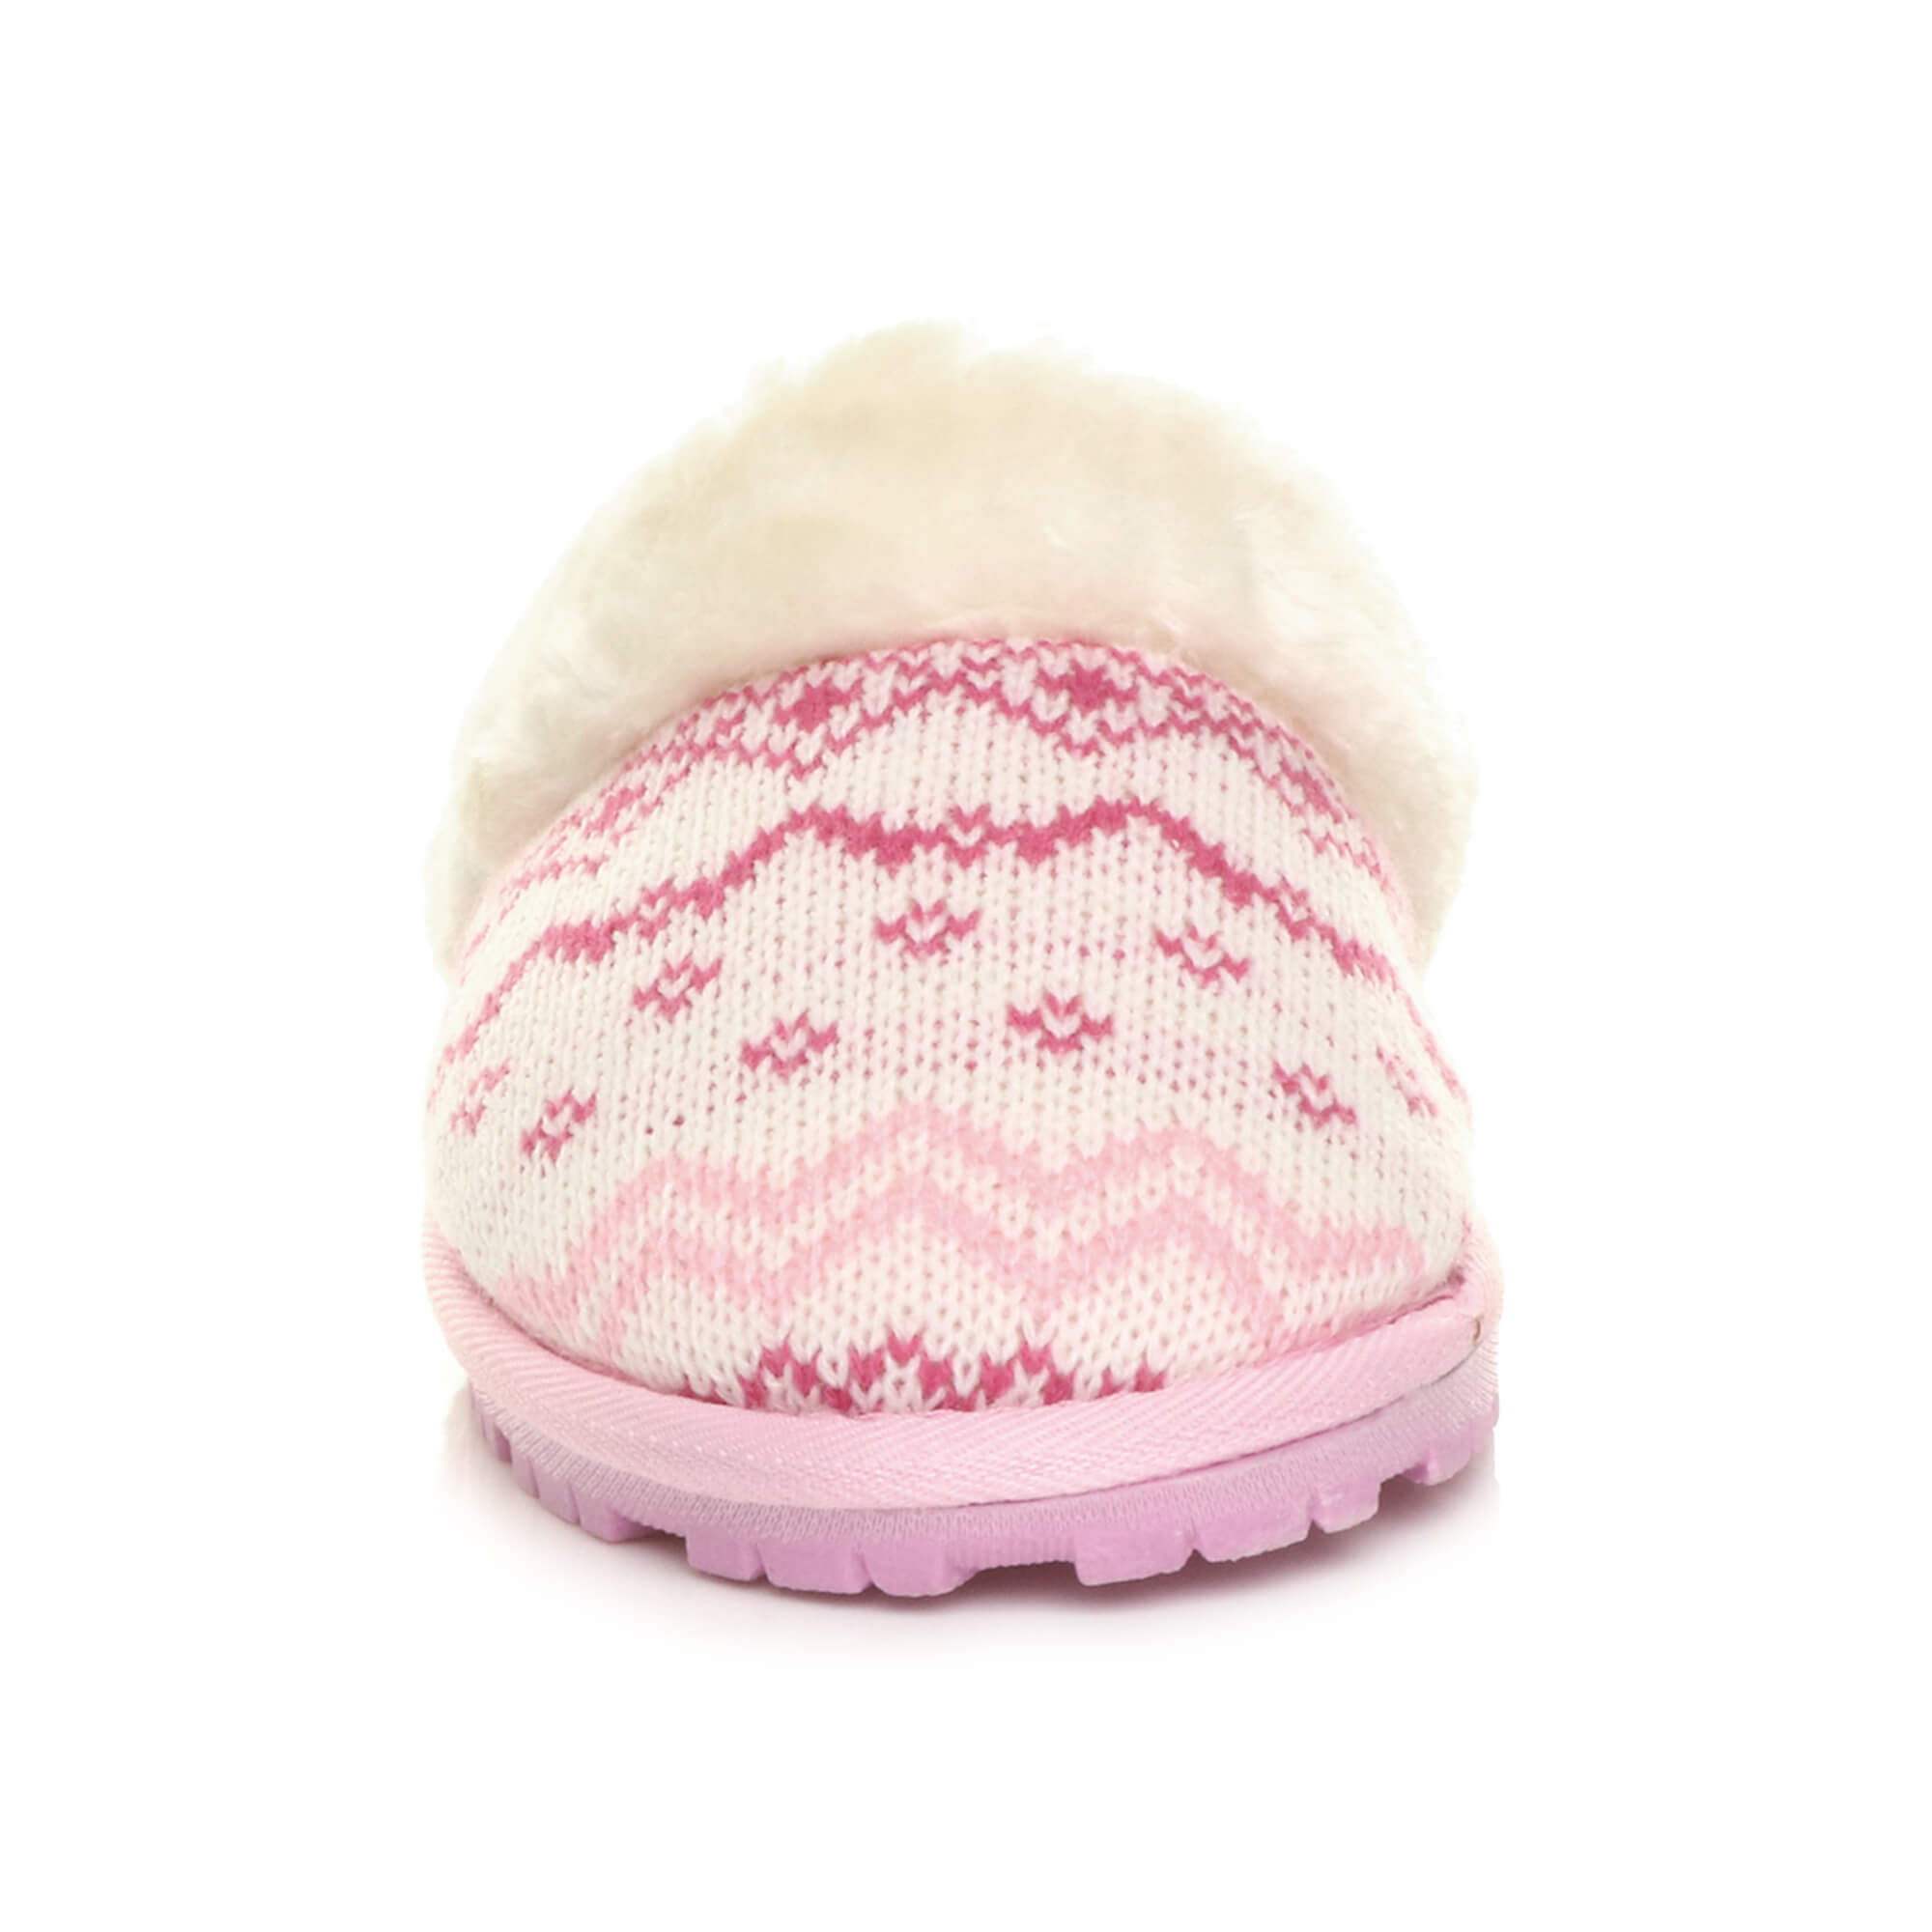 WOMENS-LADIES-FLAT-FUR-LINED-COMFORTABLE-WINTER-MULES-SLIPPERS-HOUSE-SHOES-SIZE thumbnail 77